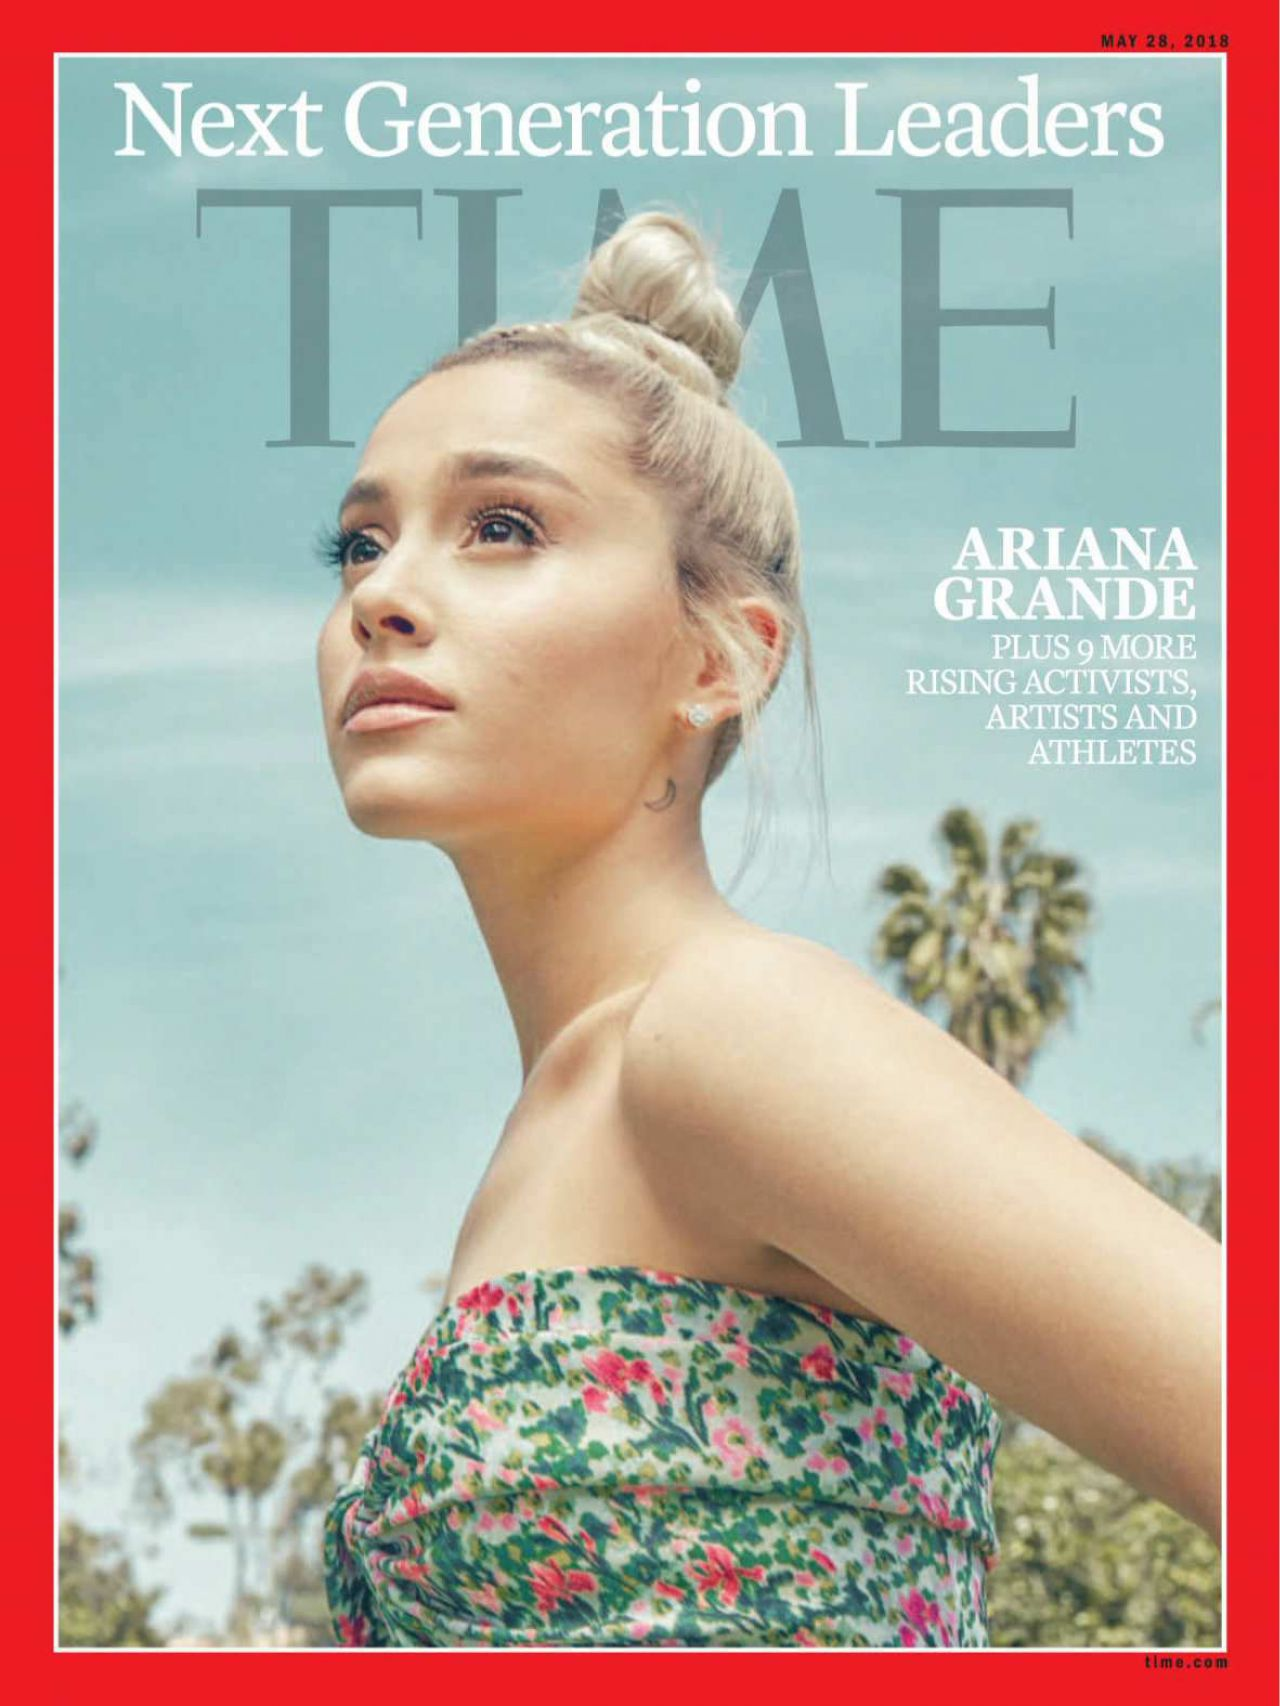 ariana grande time magazines next generation leaders